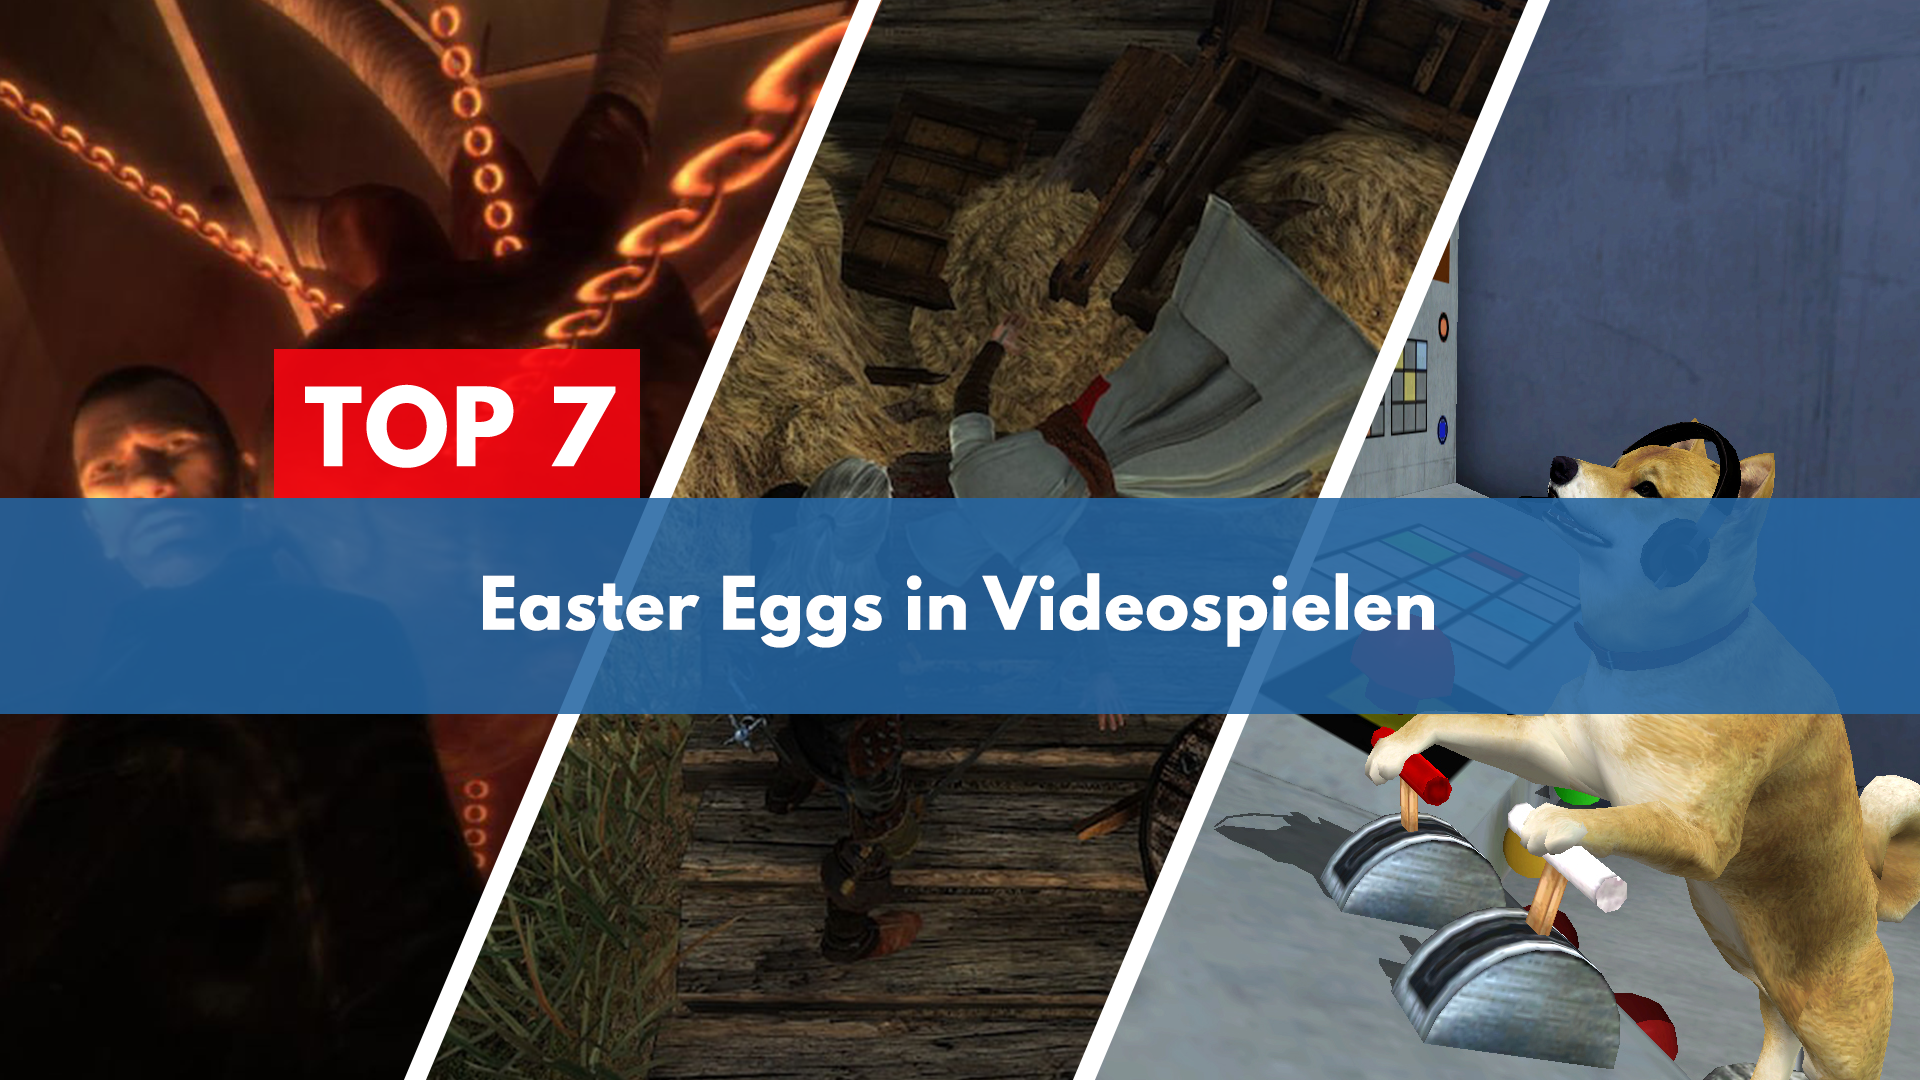 Top 7 Easter Eggs